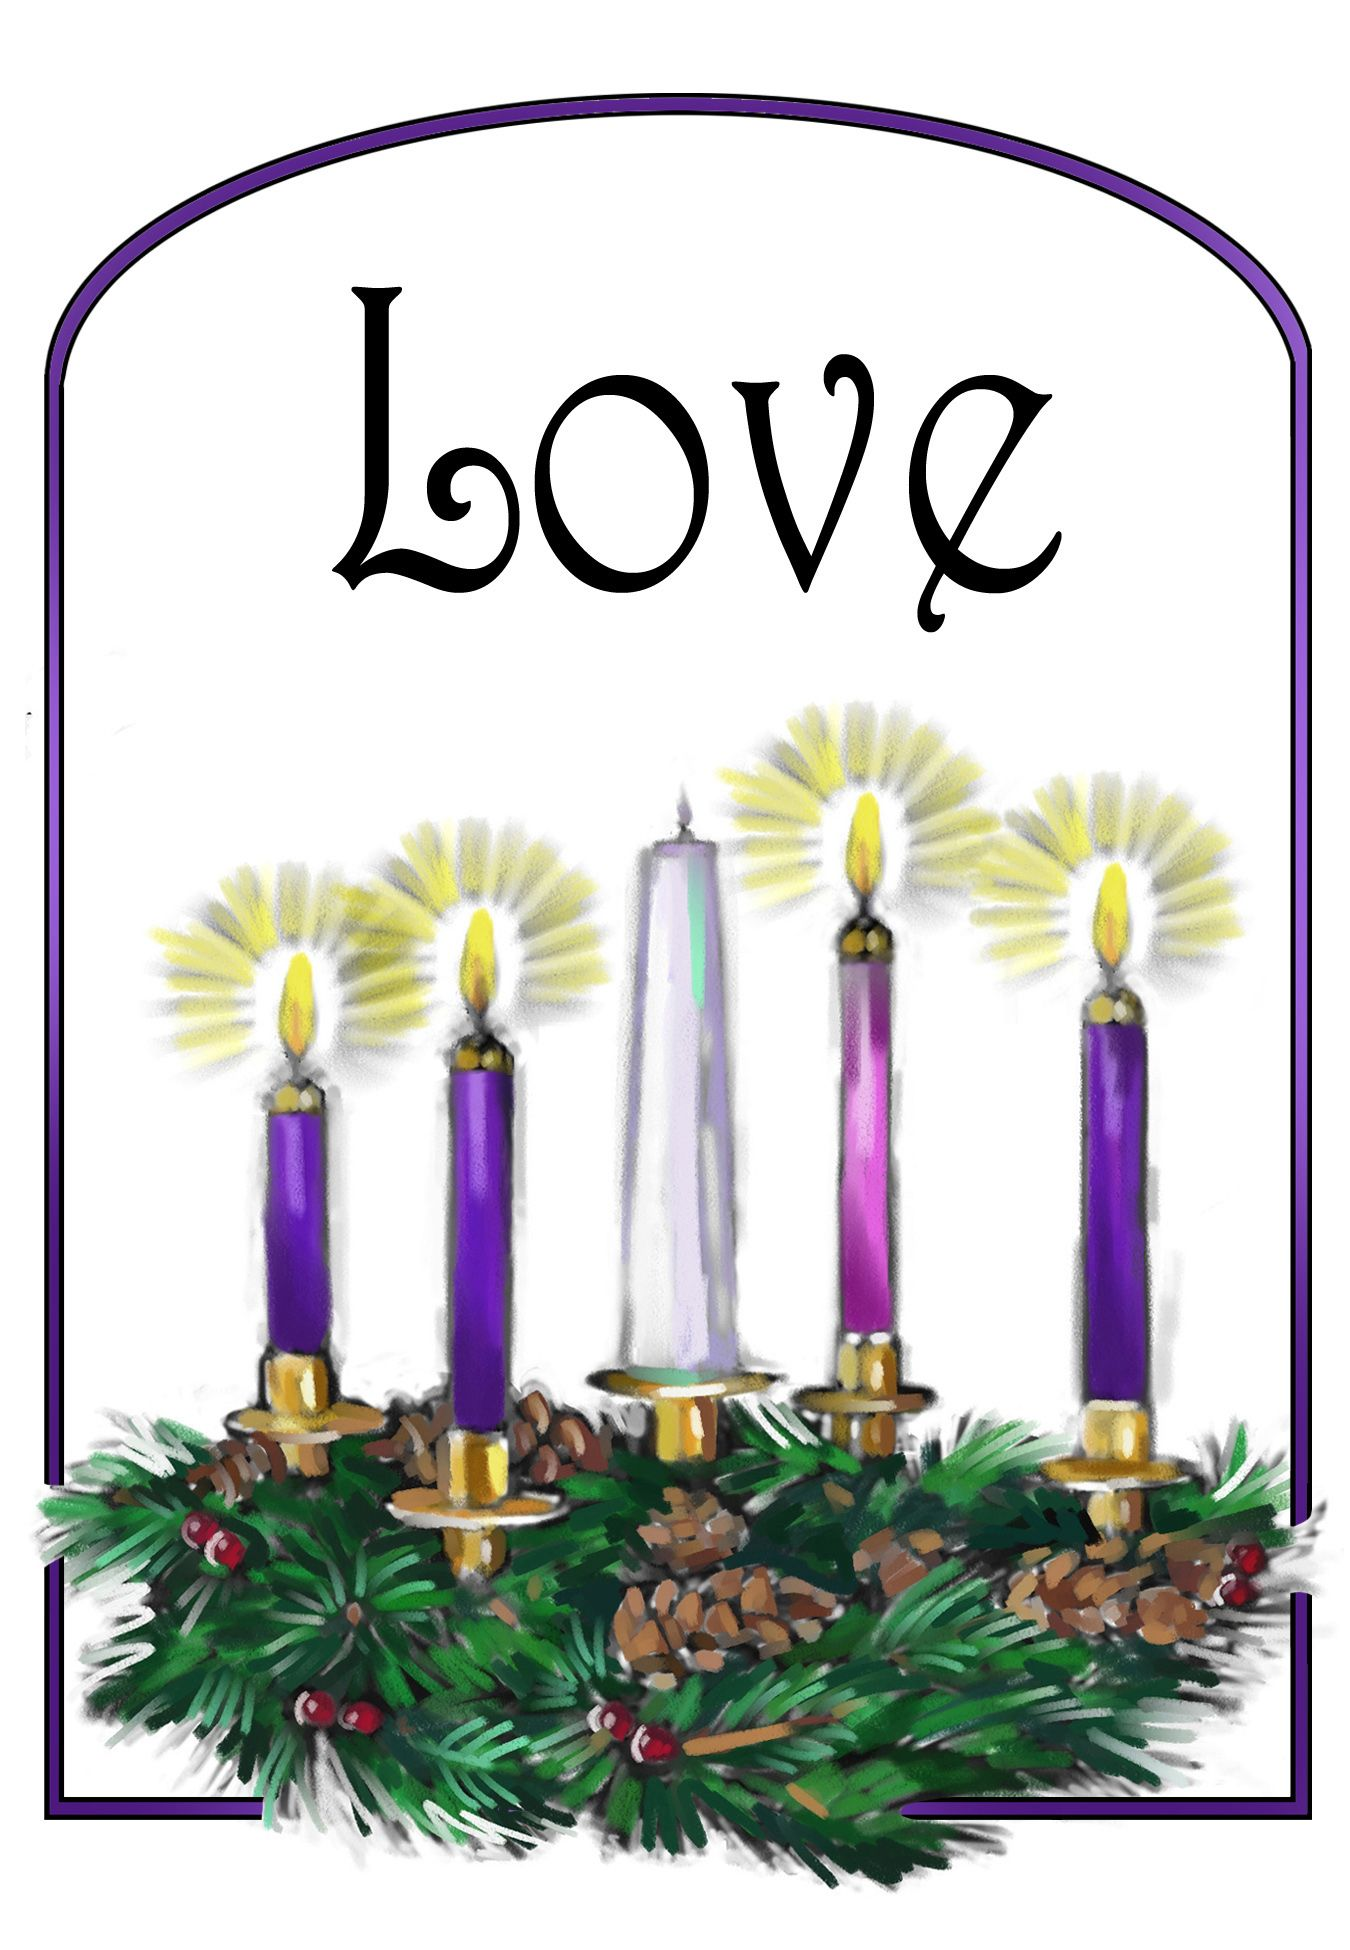 4th week of advent catholic.